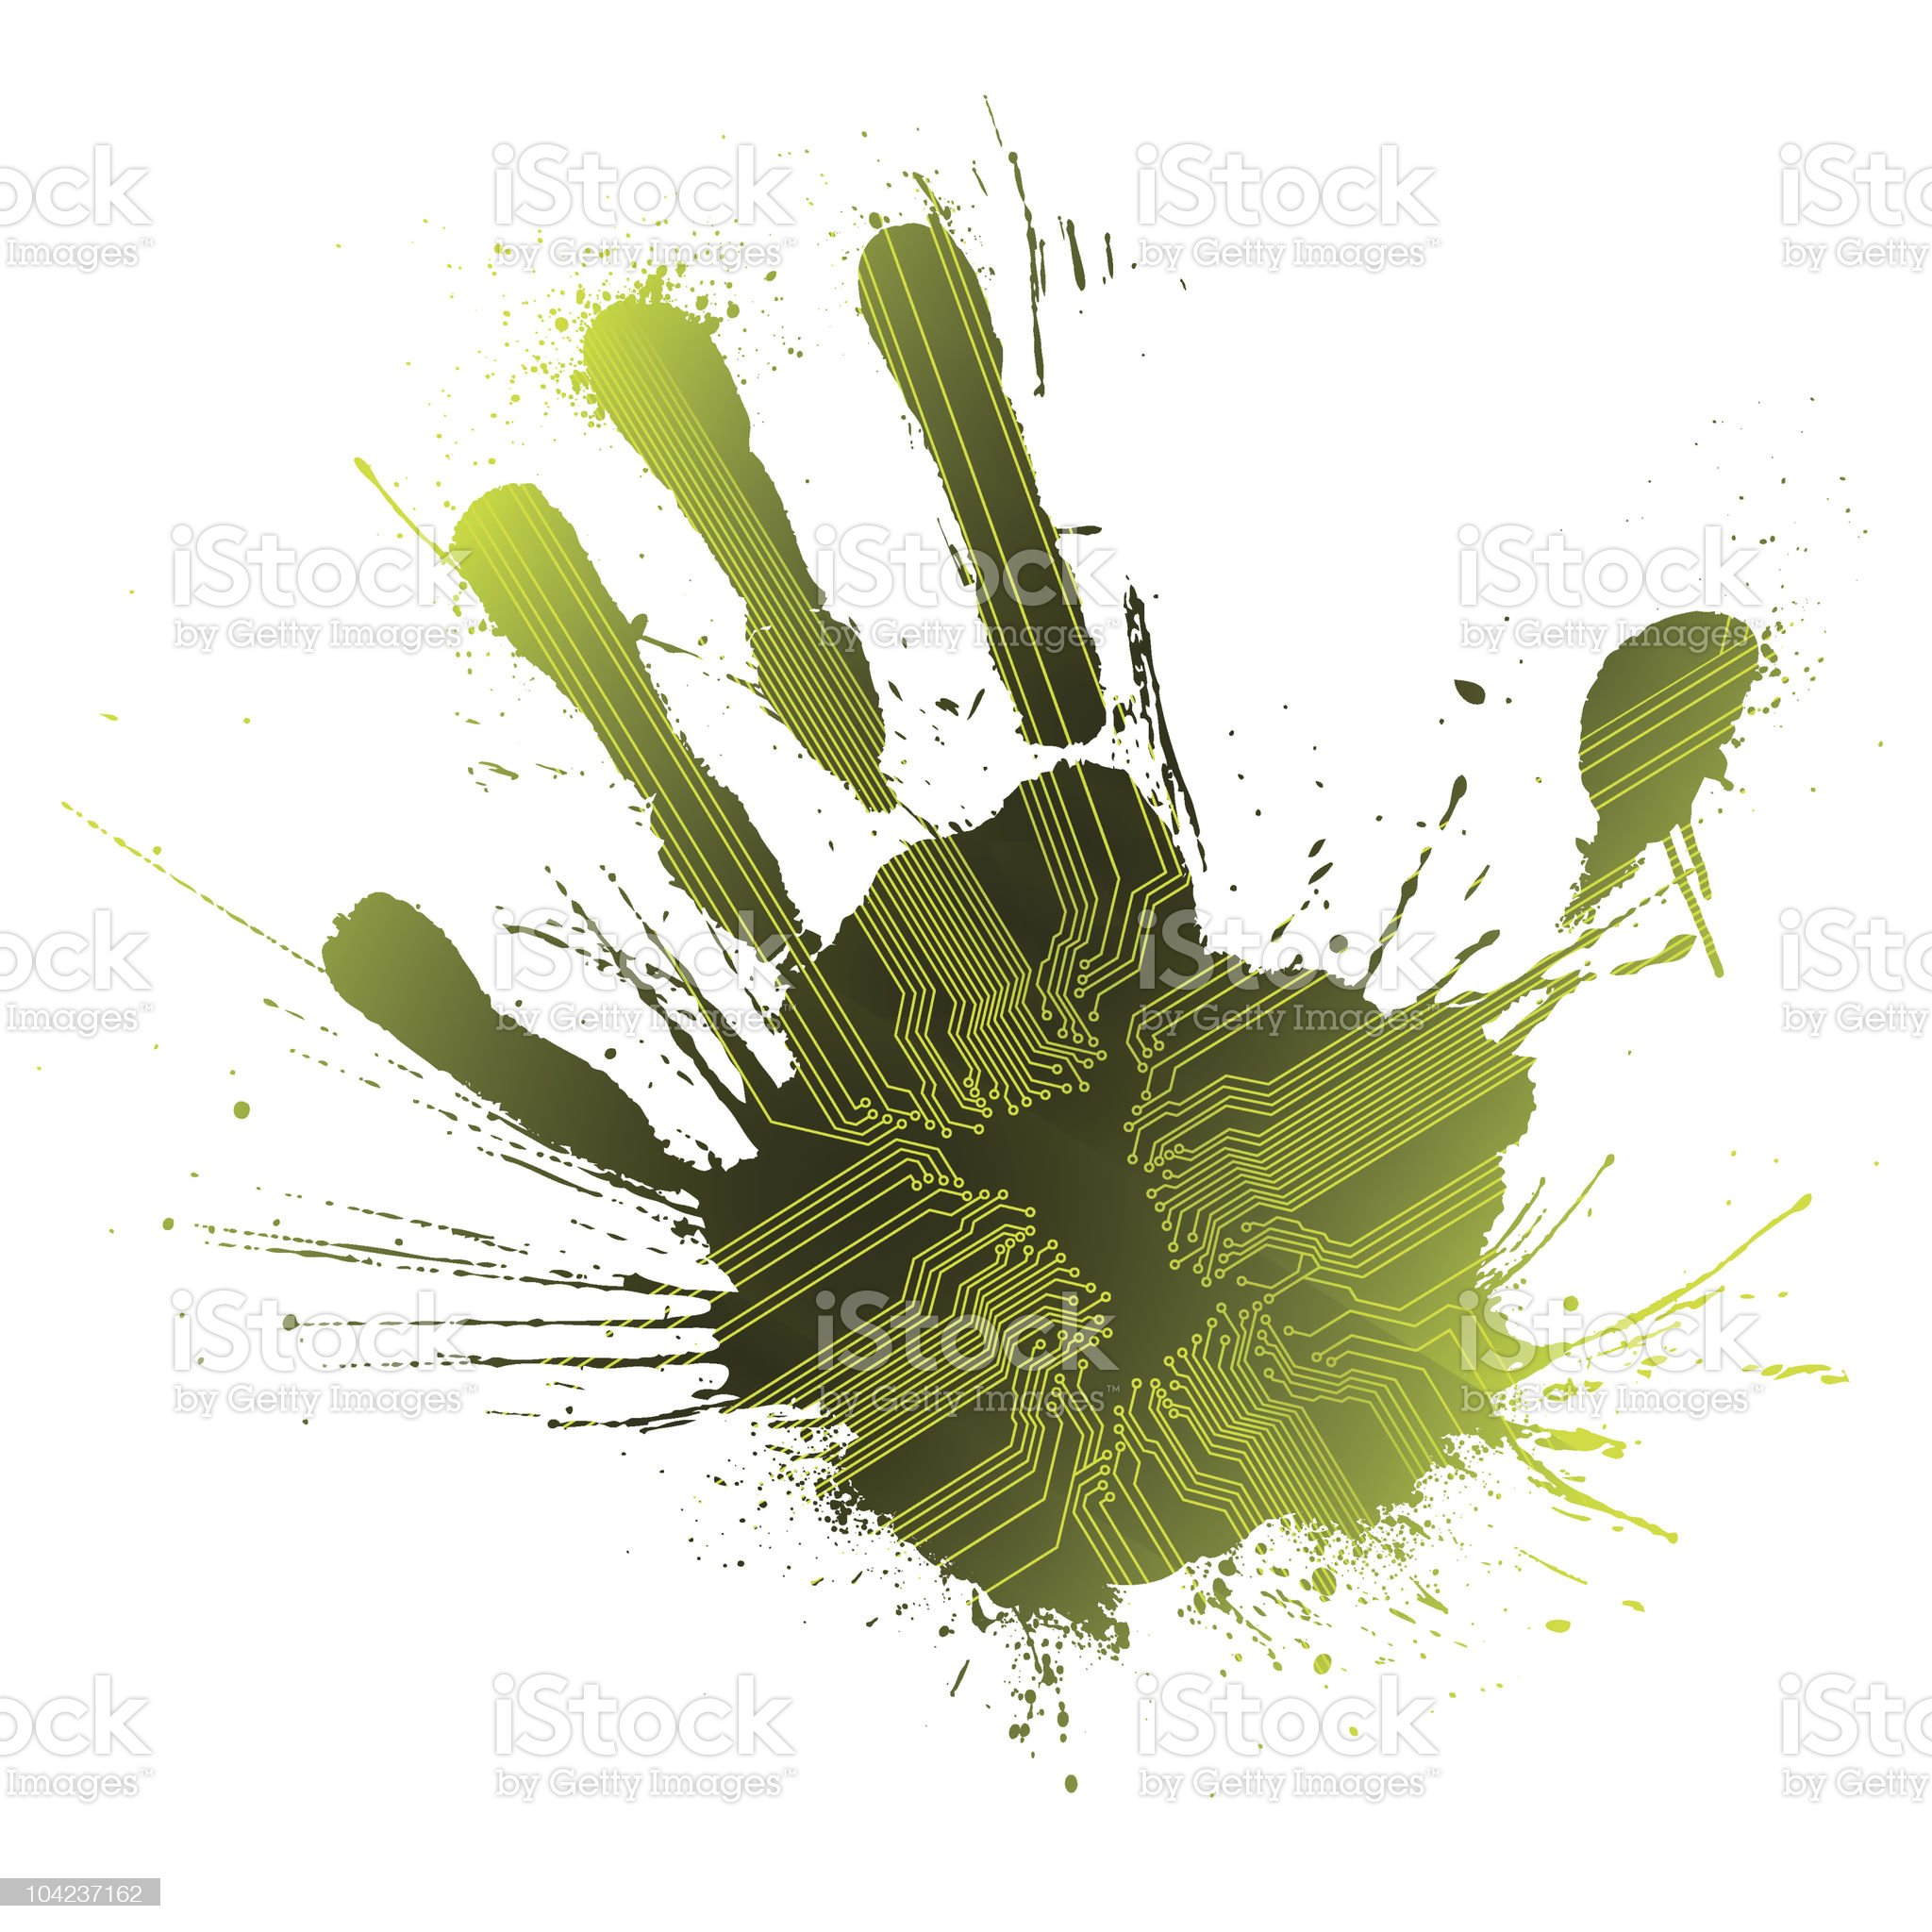 Technological green splatter handprint concept royalty-free stock vector art